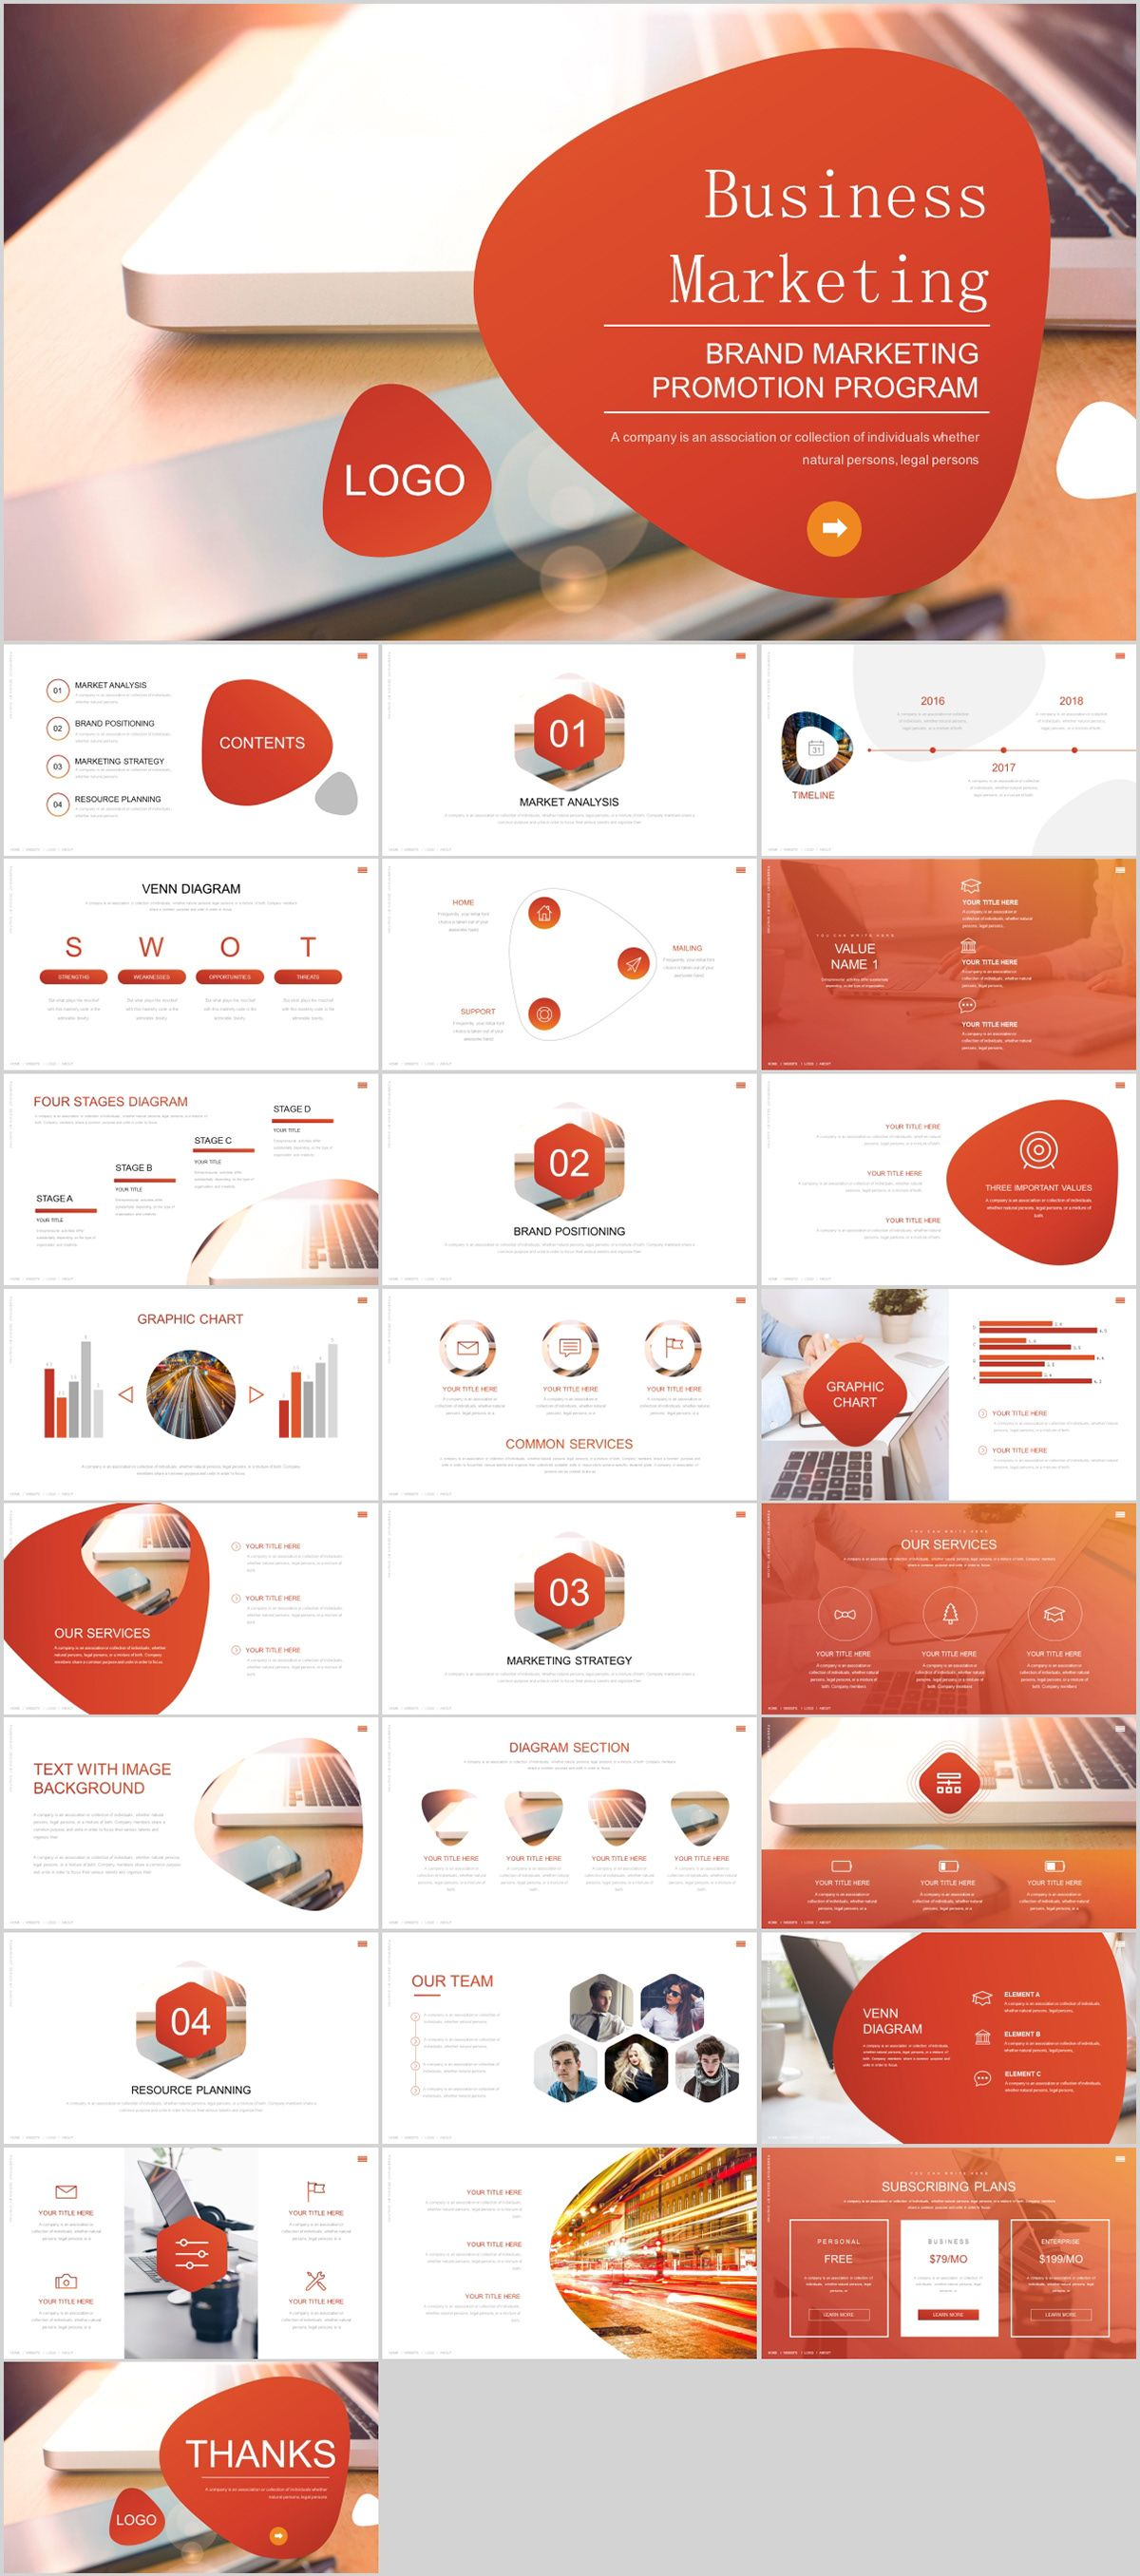 26 business marketing analysis powerpoint template on behance 26 business marketing analysis powerpoint template on behance powerpoint templates presentation toneelgroepblik Image collections